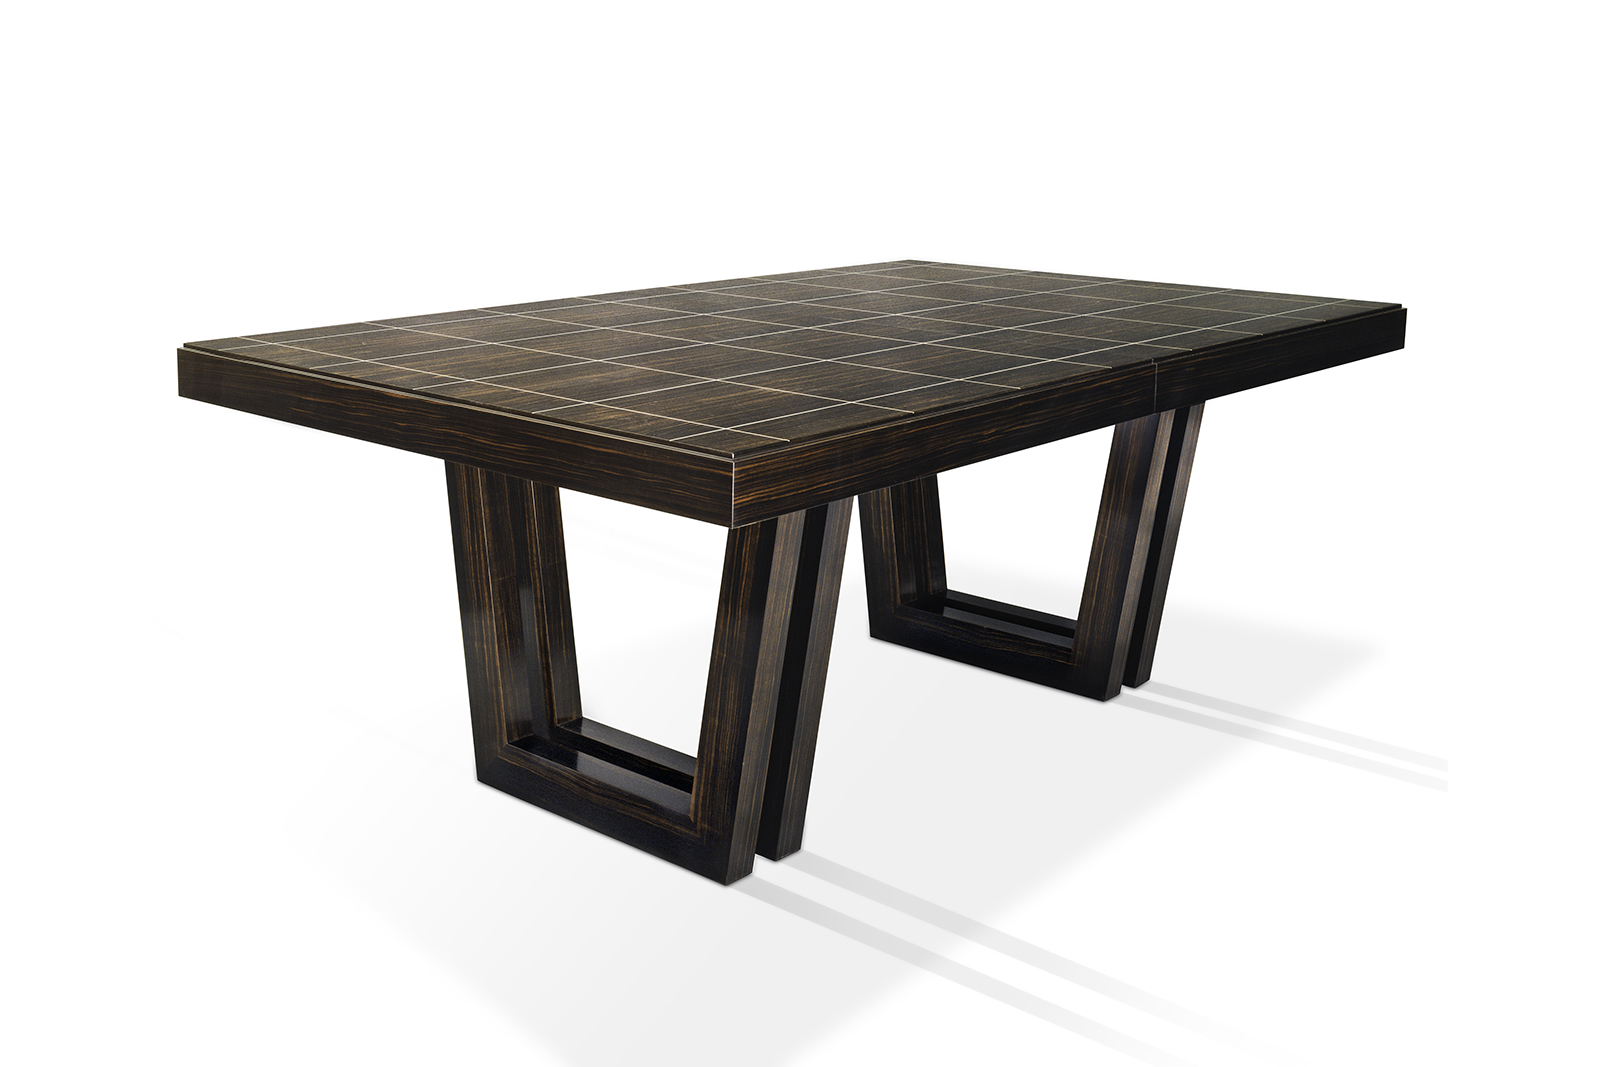 Dining Table In Macassar Ebony With Bone Inlay Part 91